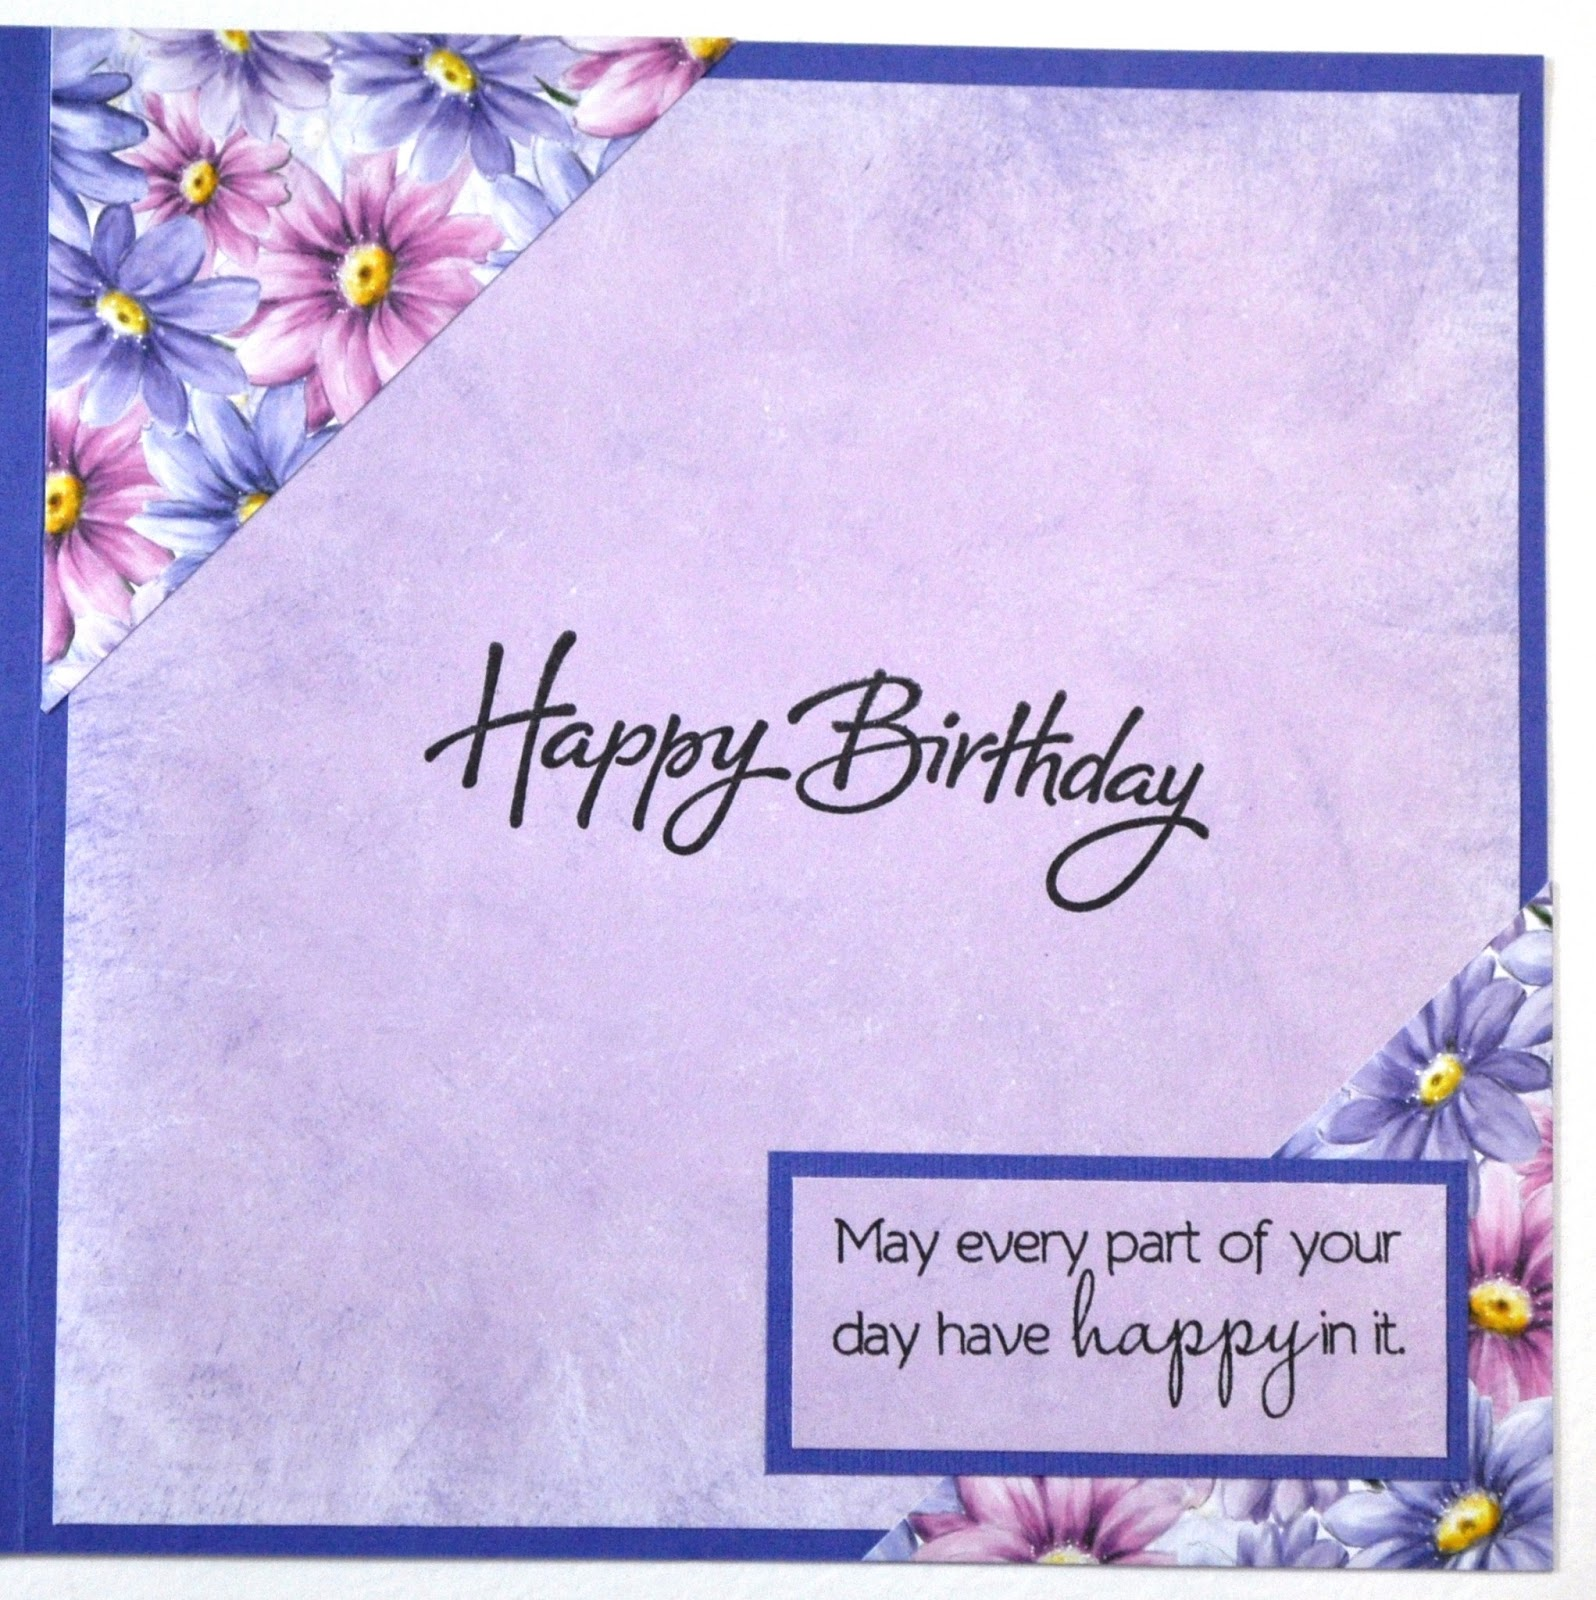 Birthday greetings for my daughter choice image greeting card examples elegant daughter birthday card pictures eccleshallfc dat s my style amy s 15th birthday card kristyandbryce kristyandbryce Images